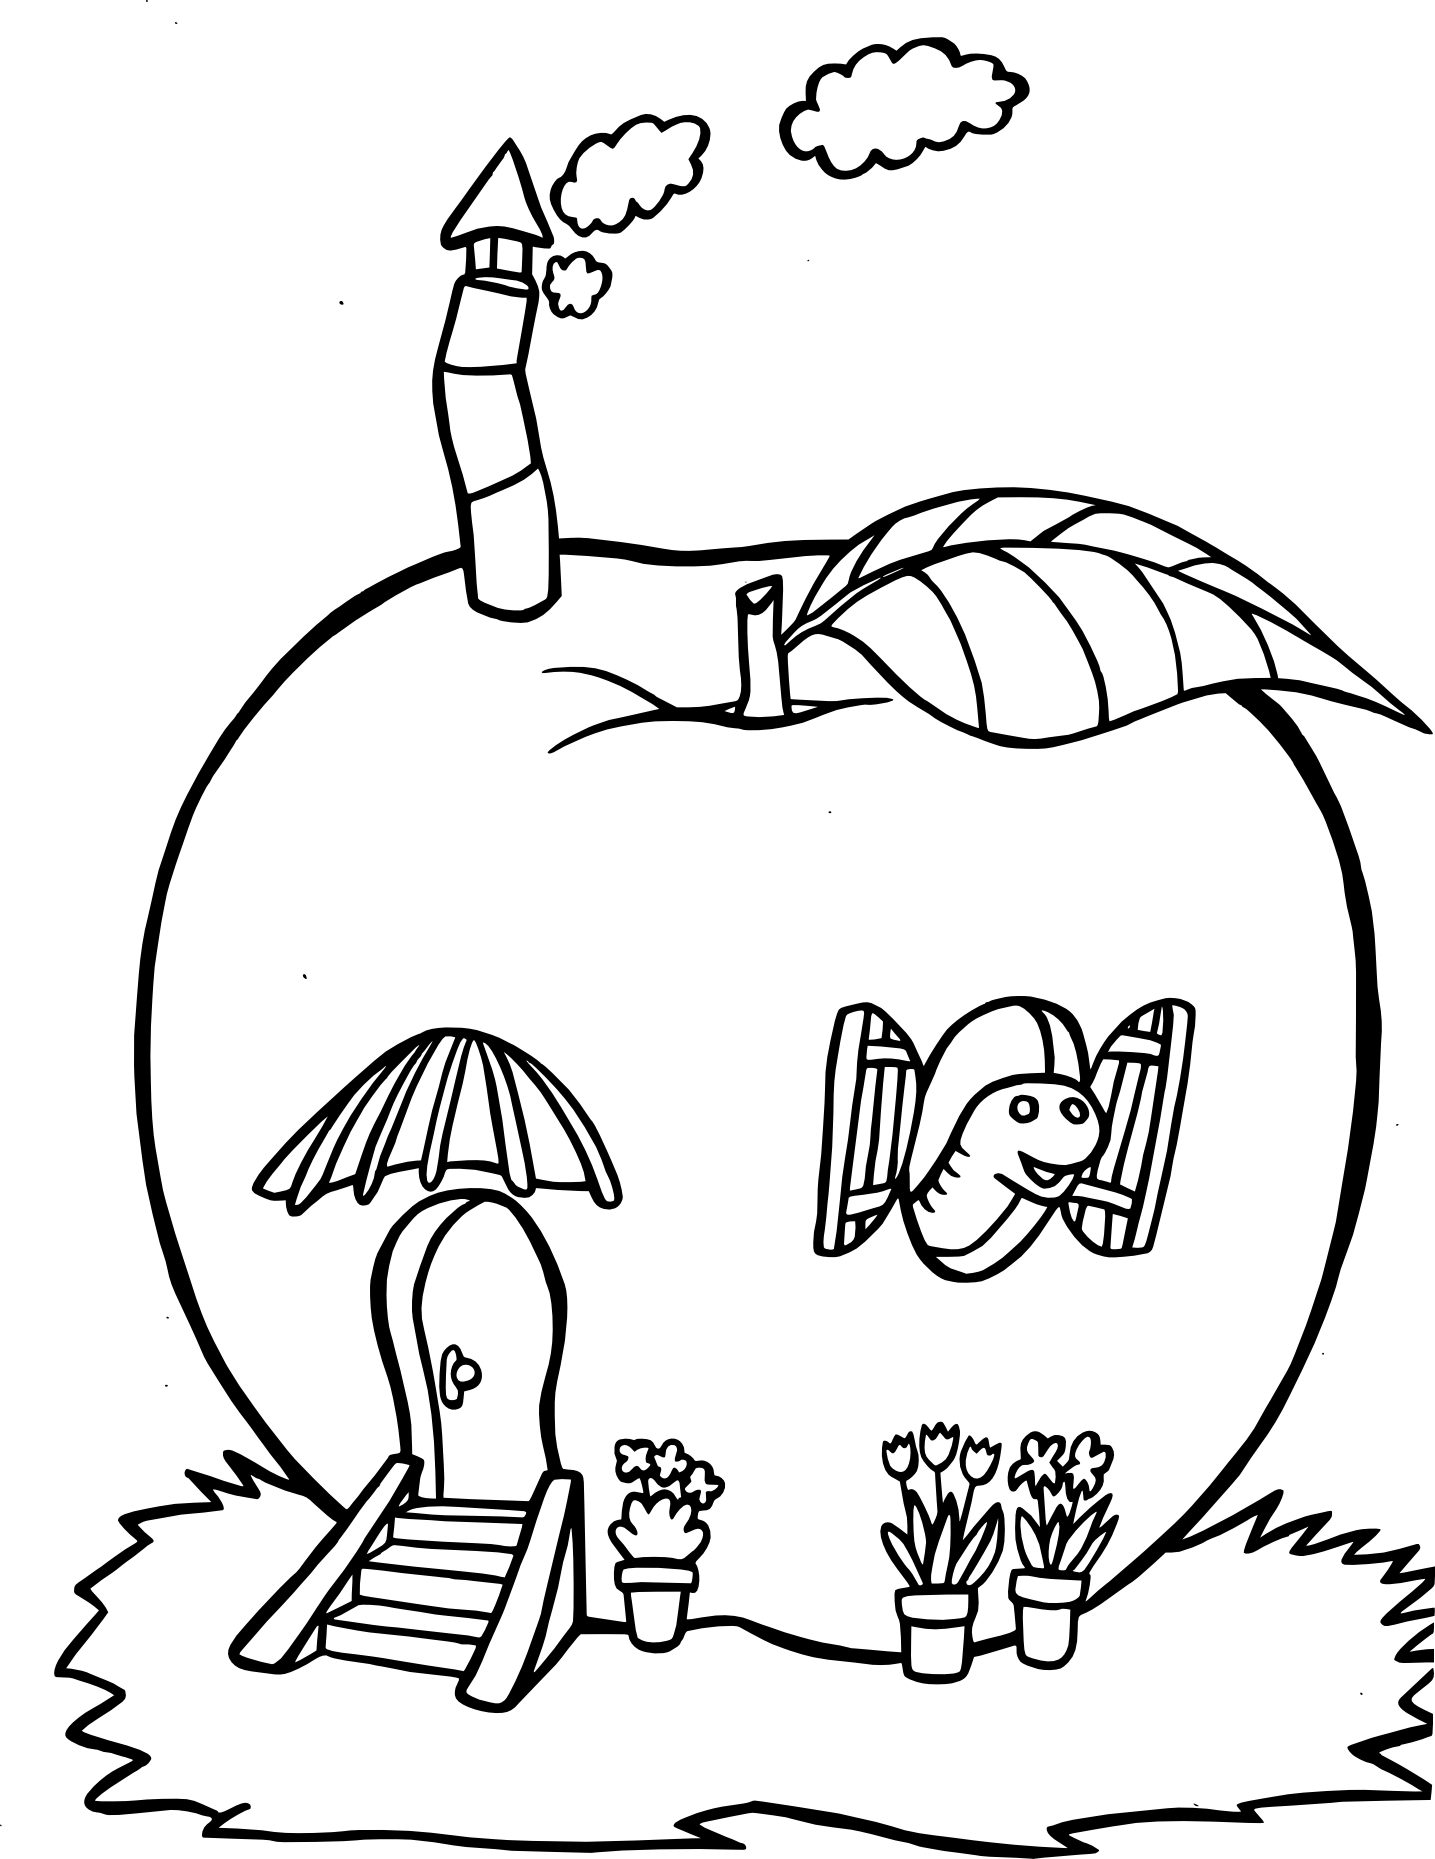 Igloo Coloring Coloring Pages